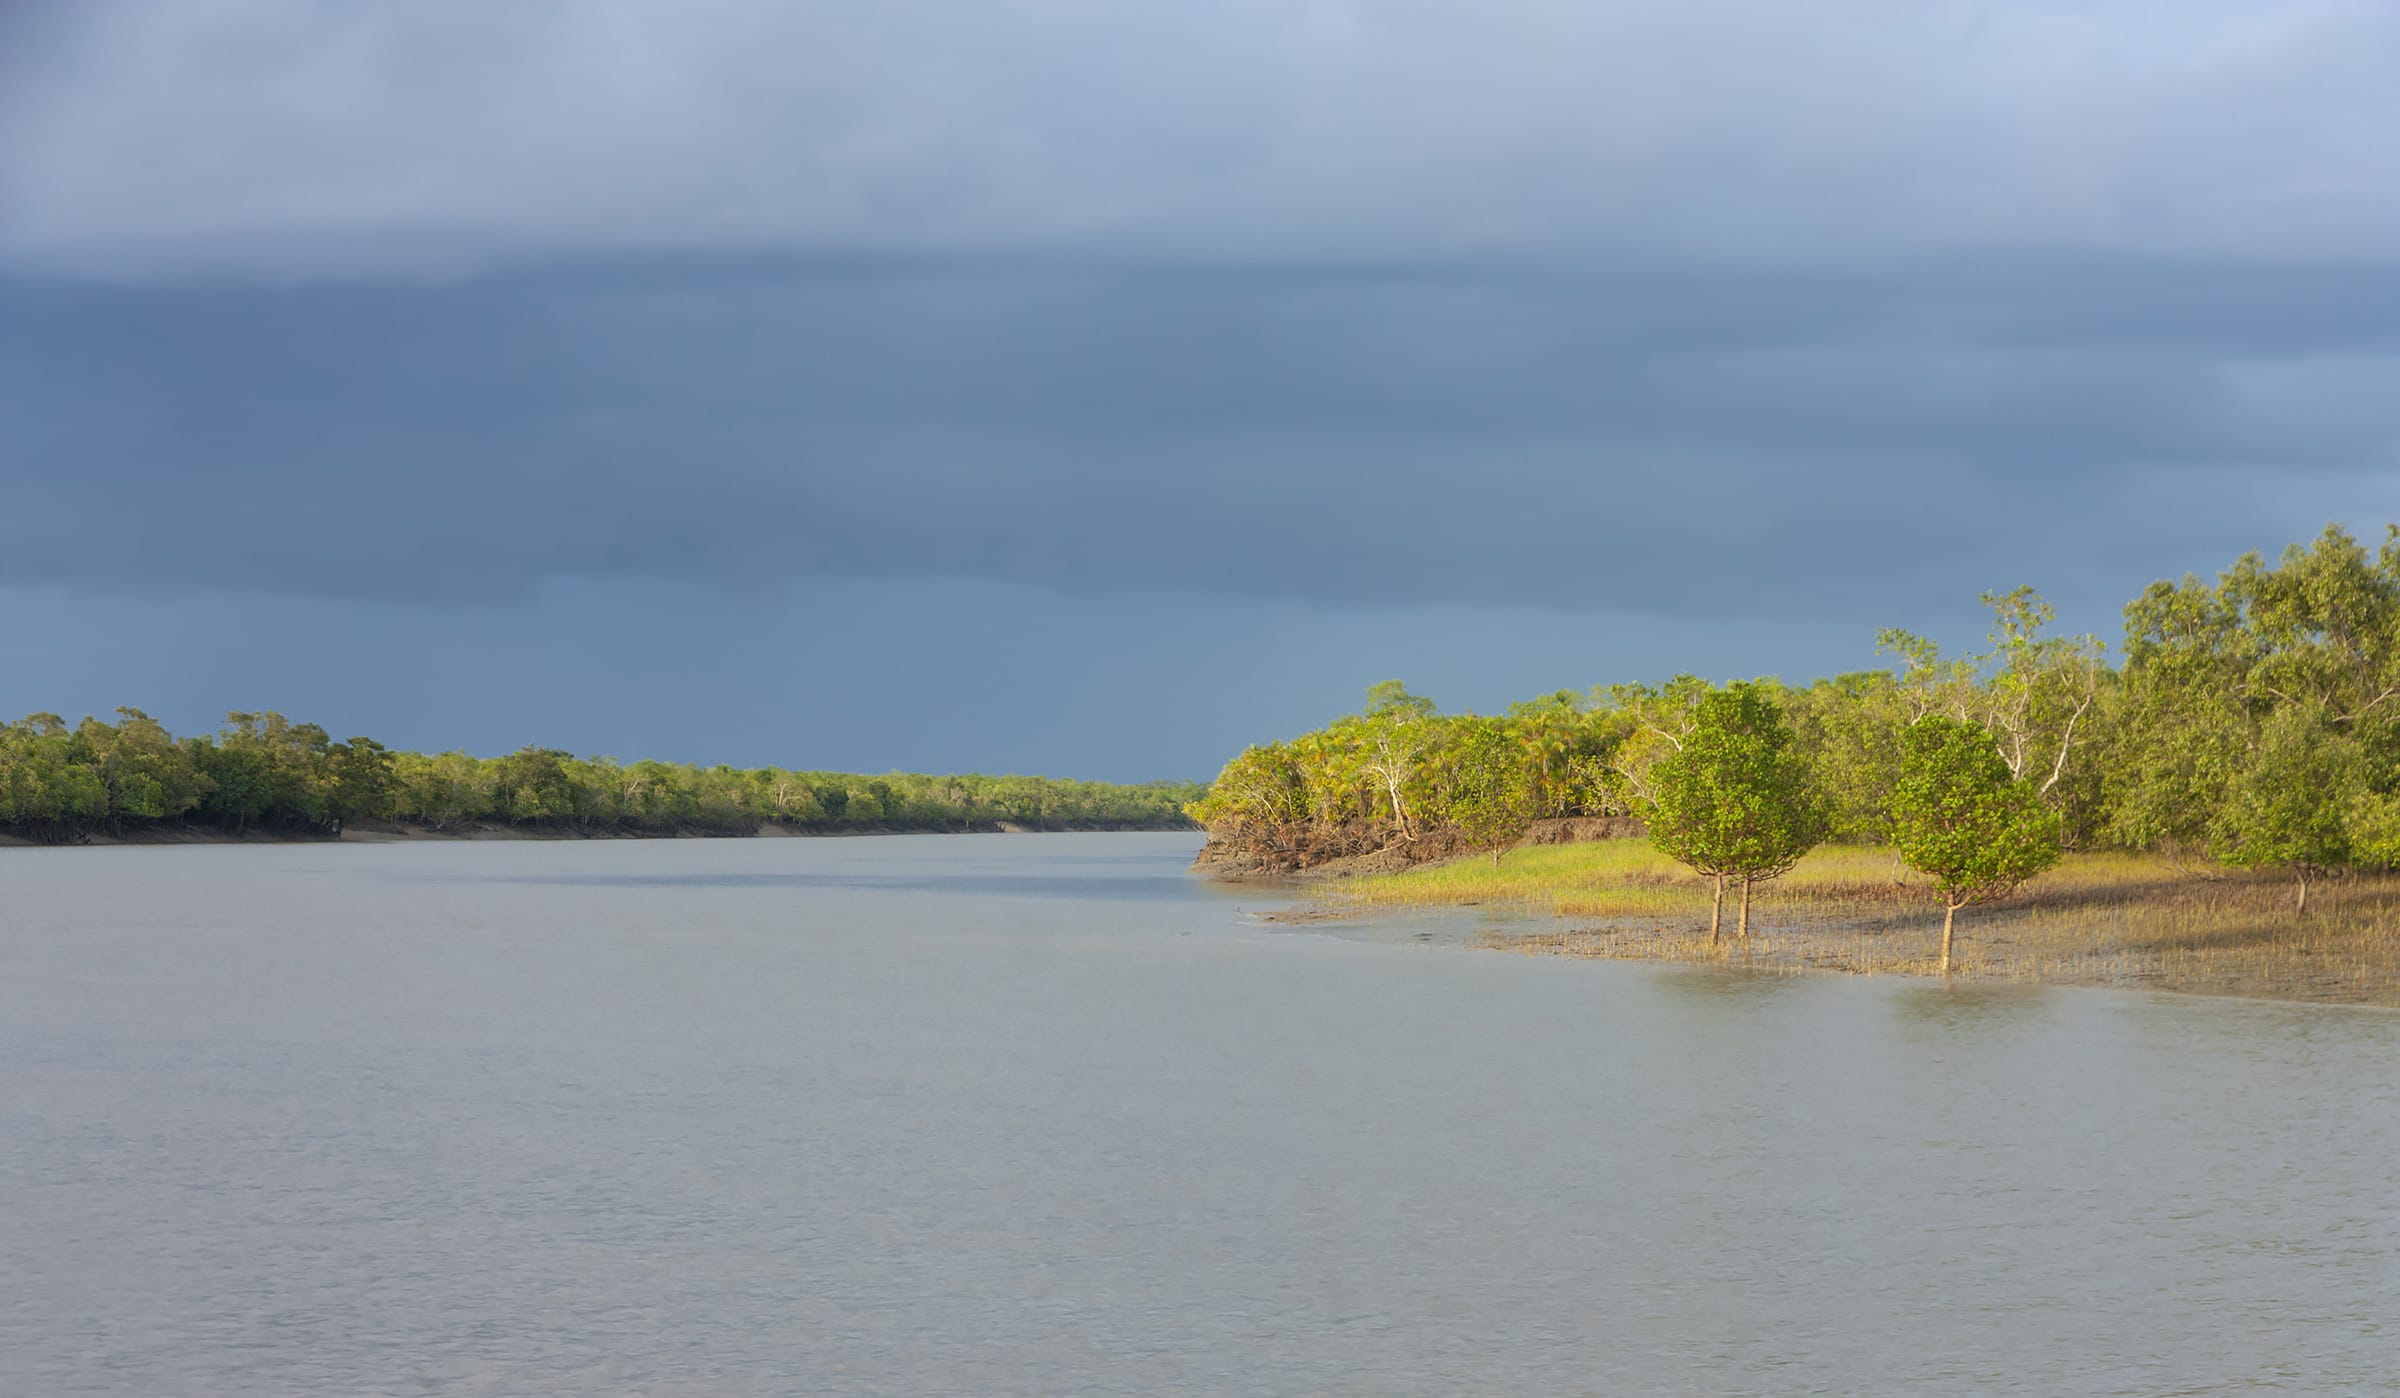 Migrating Mangroves: Why Sundarbans' Coast Guards Are Moving